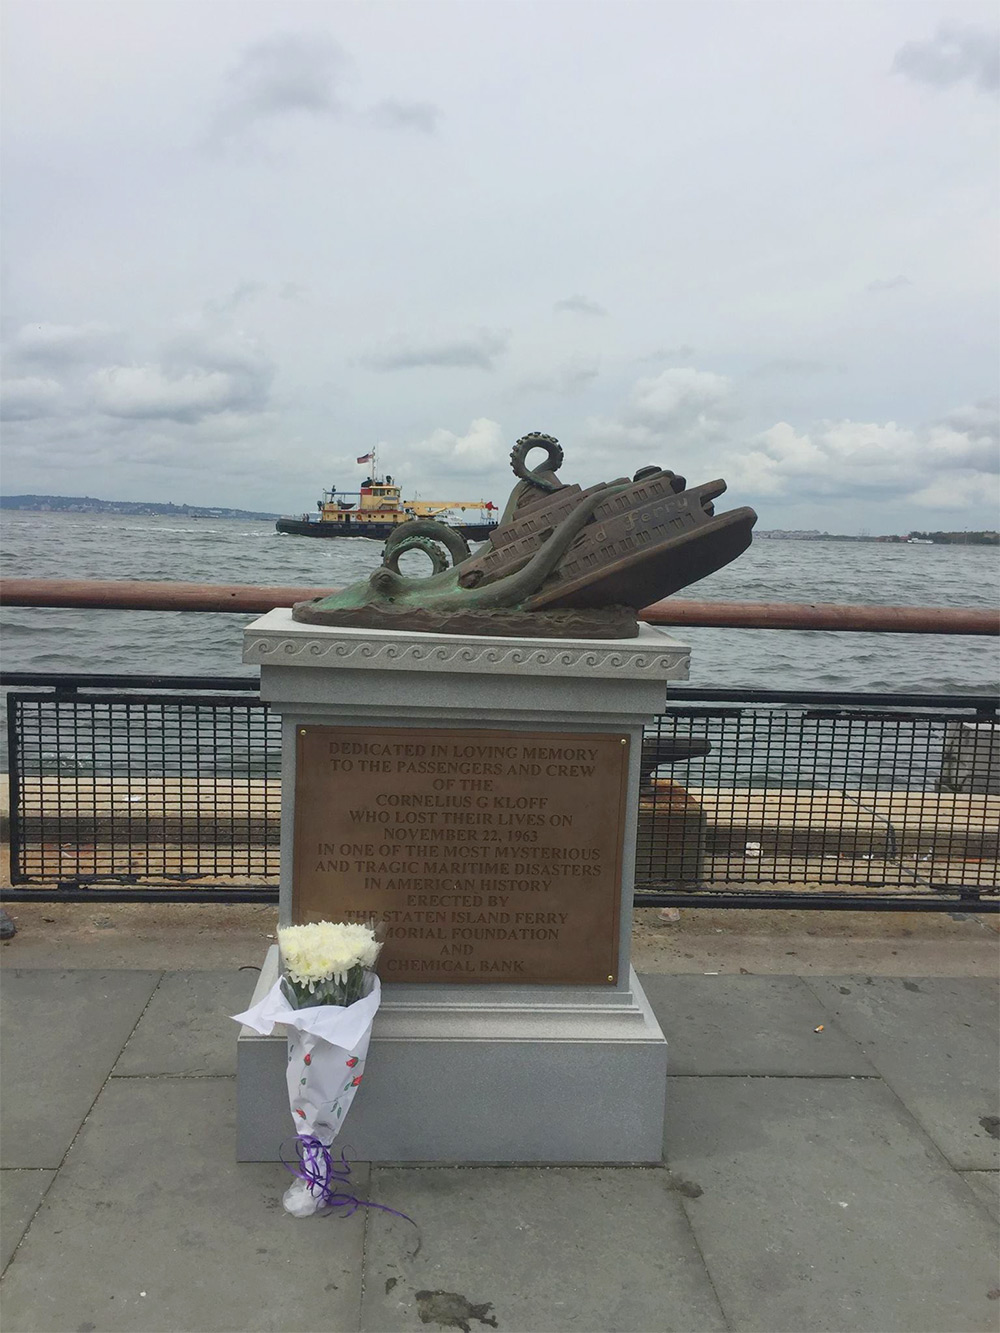 Elaborate Bronze Memorial Dedicated to Staten Island Ferry Octopus Attack Tricks Tourists (4 pics)